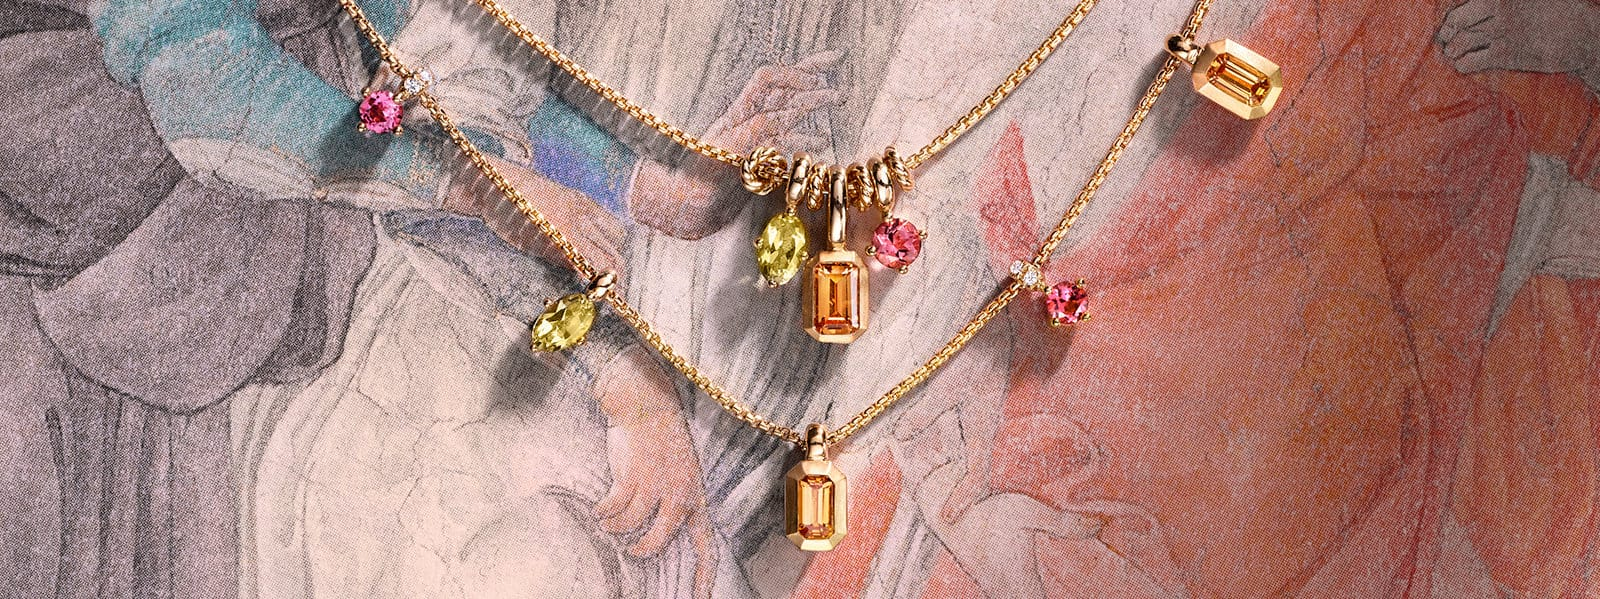 Novella necklaces in 18K yellow gold with colored gemstones and white diamonds against a Renaissance-style painting.